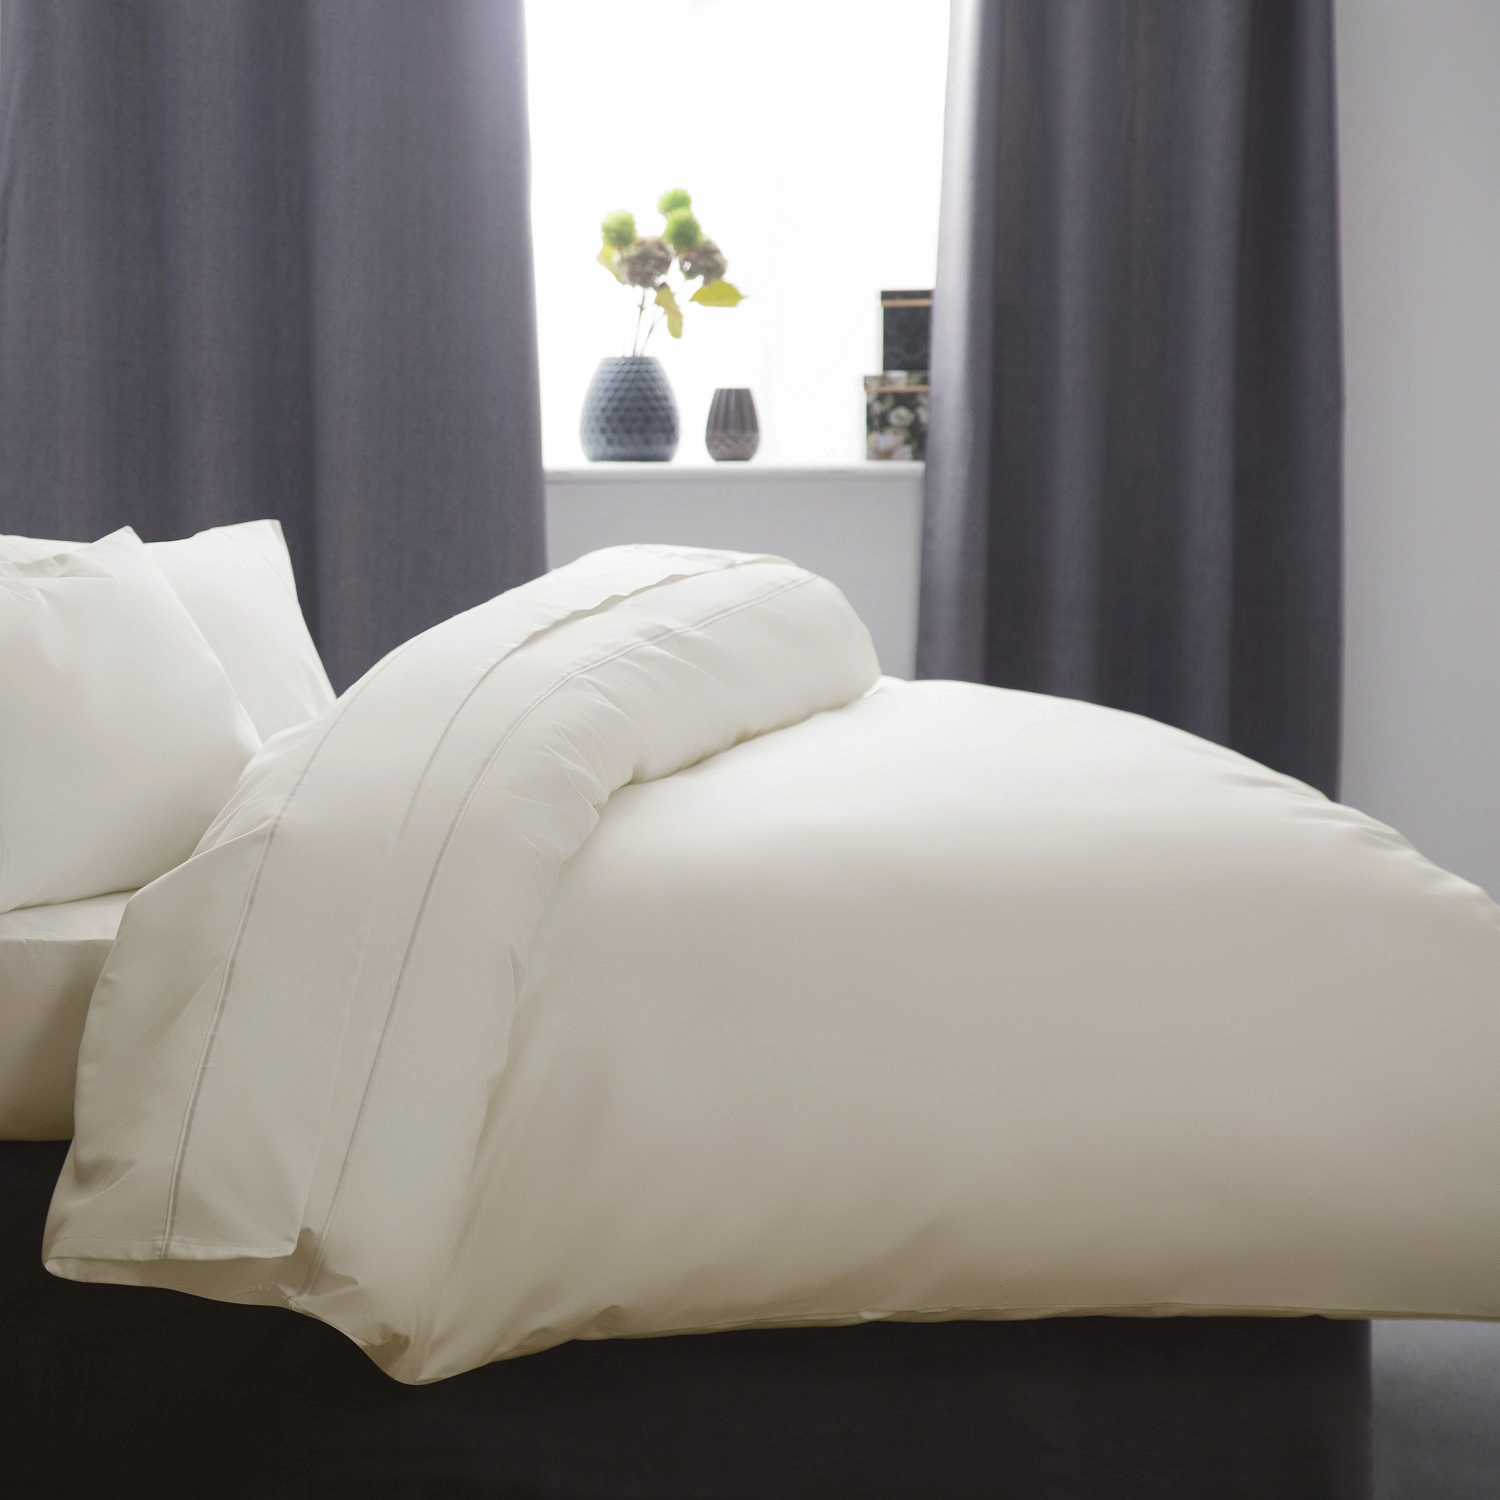 1000 TC Luxury Egyptian Cotton Duvet Cover ivory